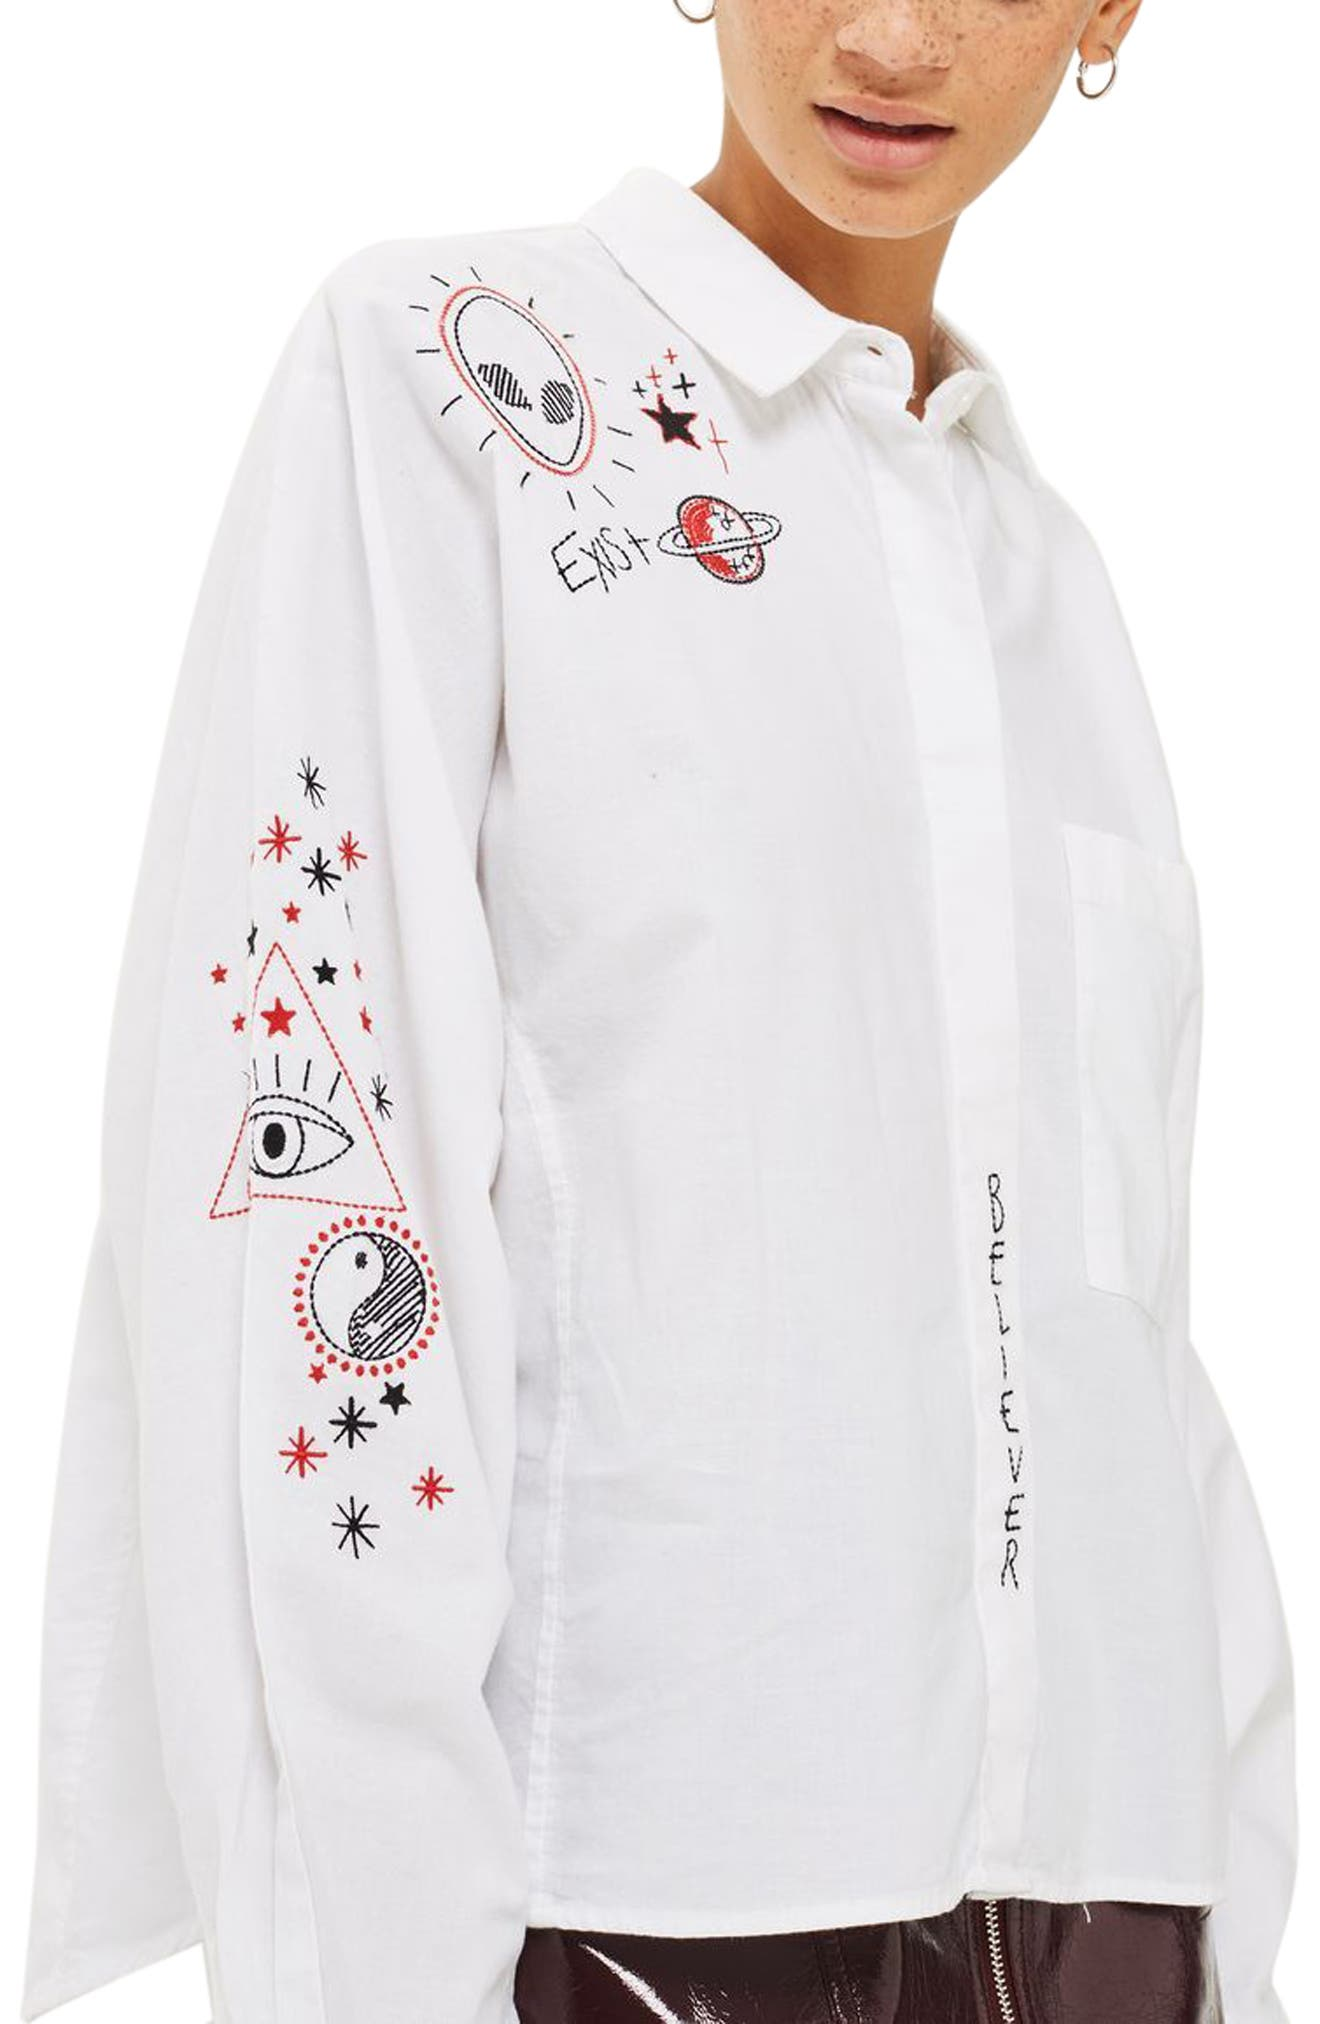 Doodle Believer Embroidered Shirt,                         Main,                         color, White Multi